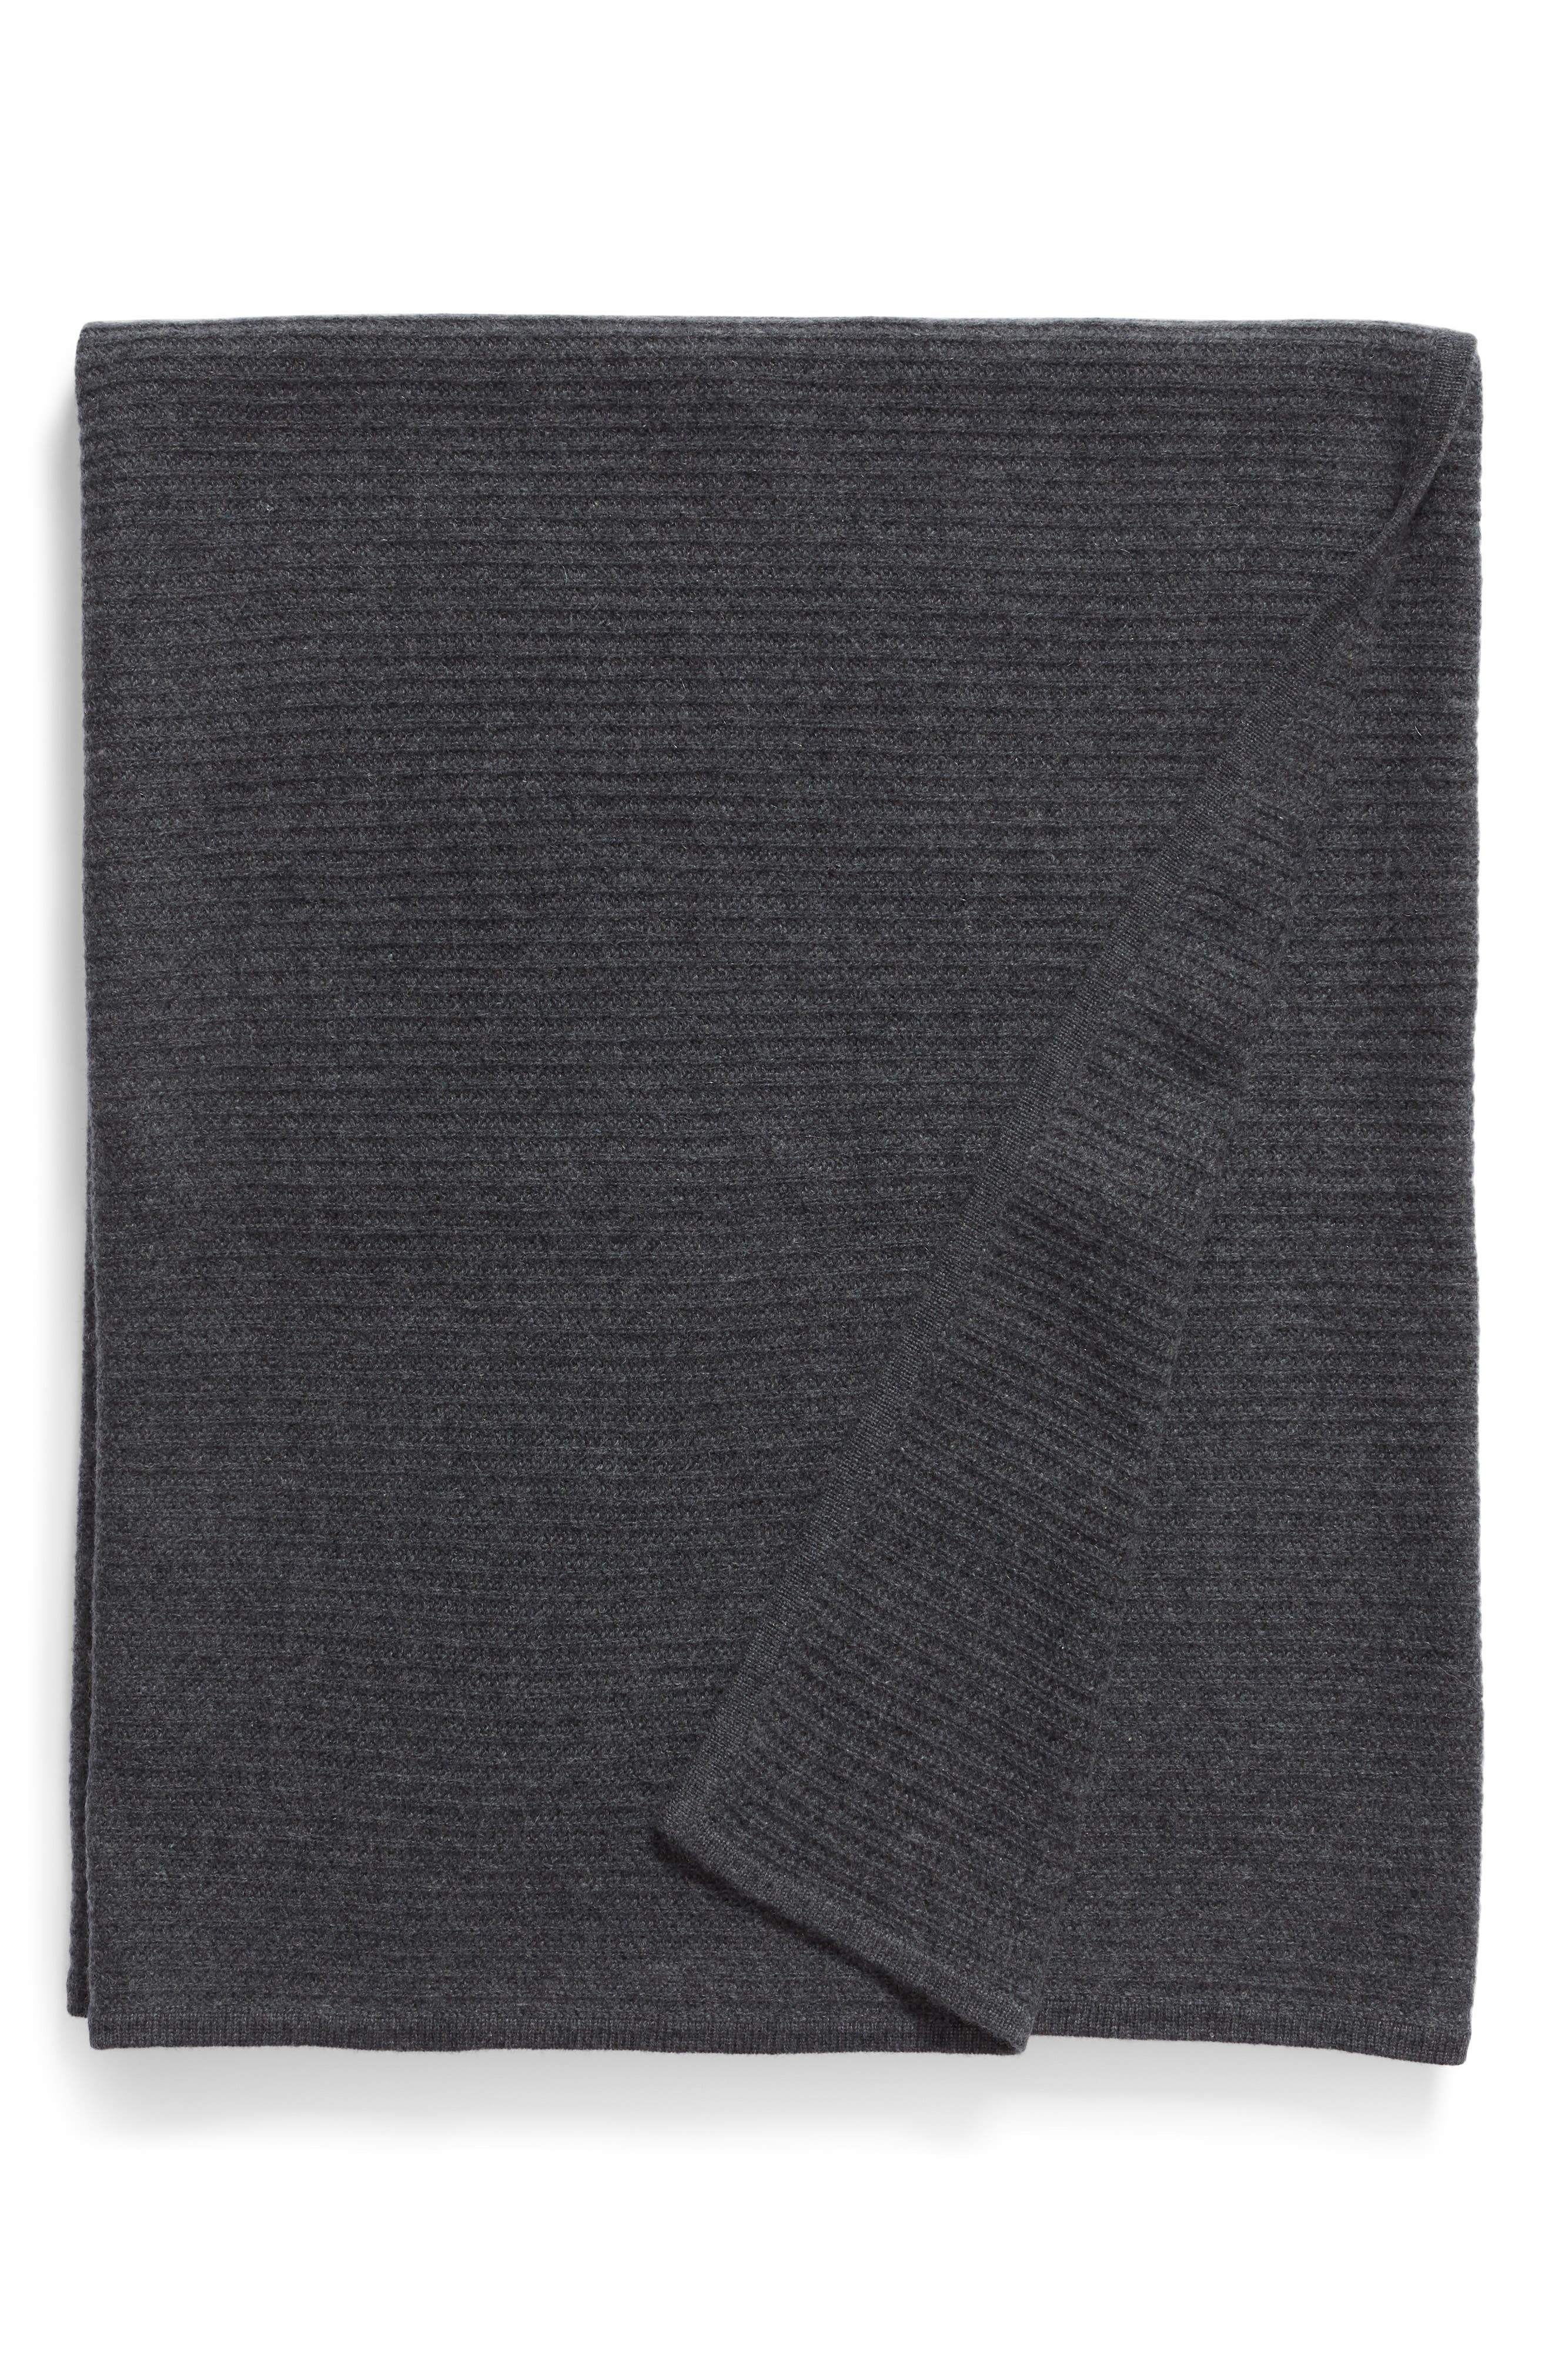 Ribbed Cashmere Throw,                         Main,                         color, CHARCOAL HEATHER